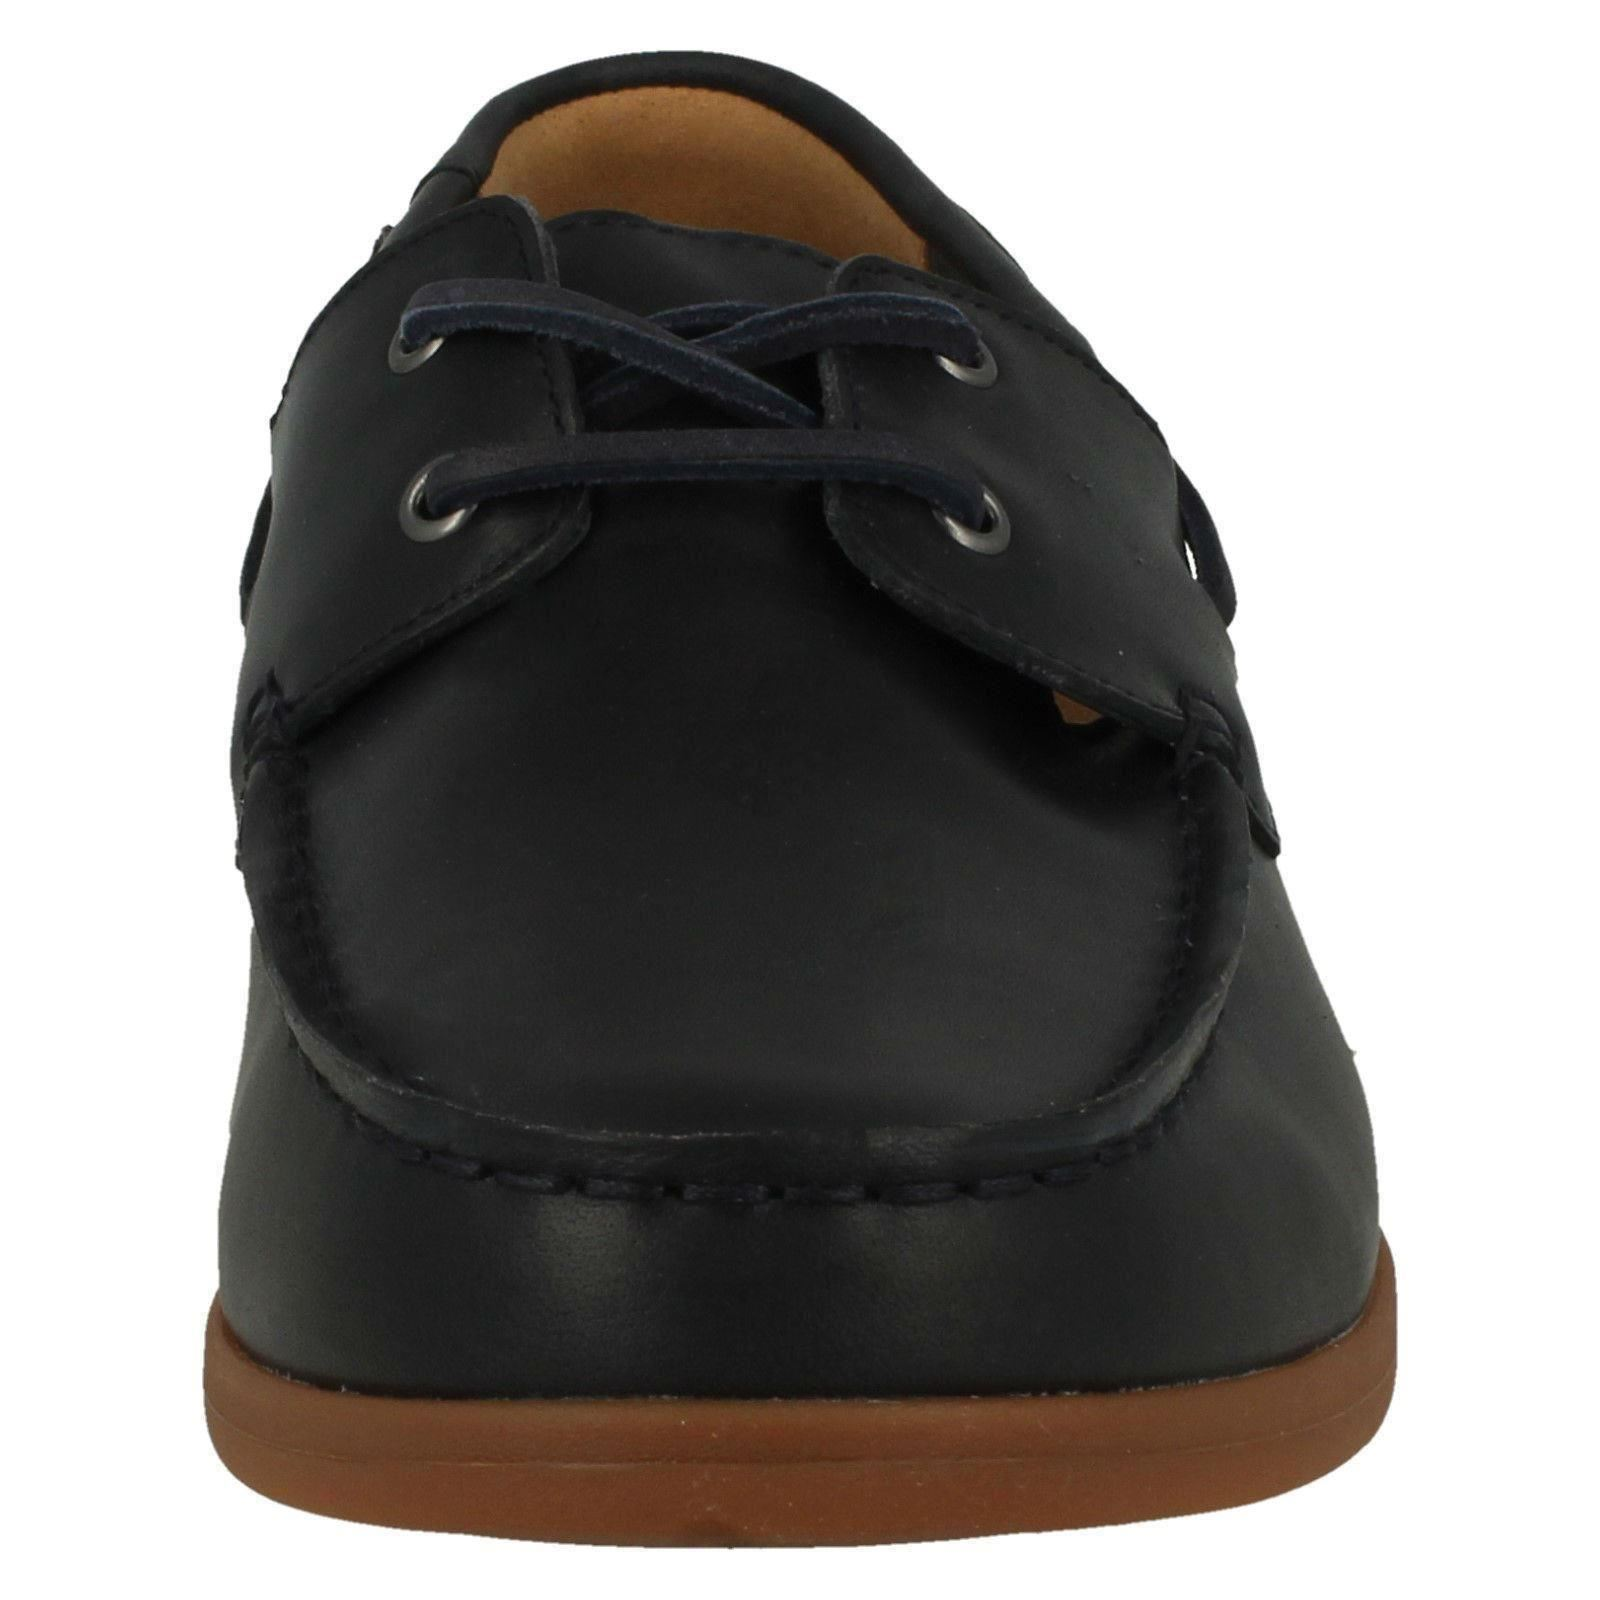 Men's Clarks Lace Sail Up Casual Boat Schuhes Morven Sail Lace 58f404